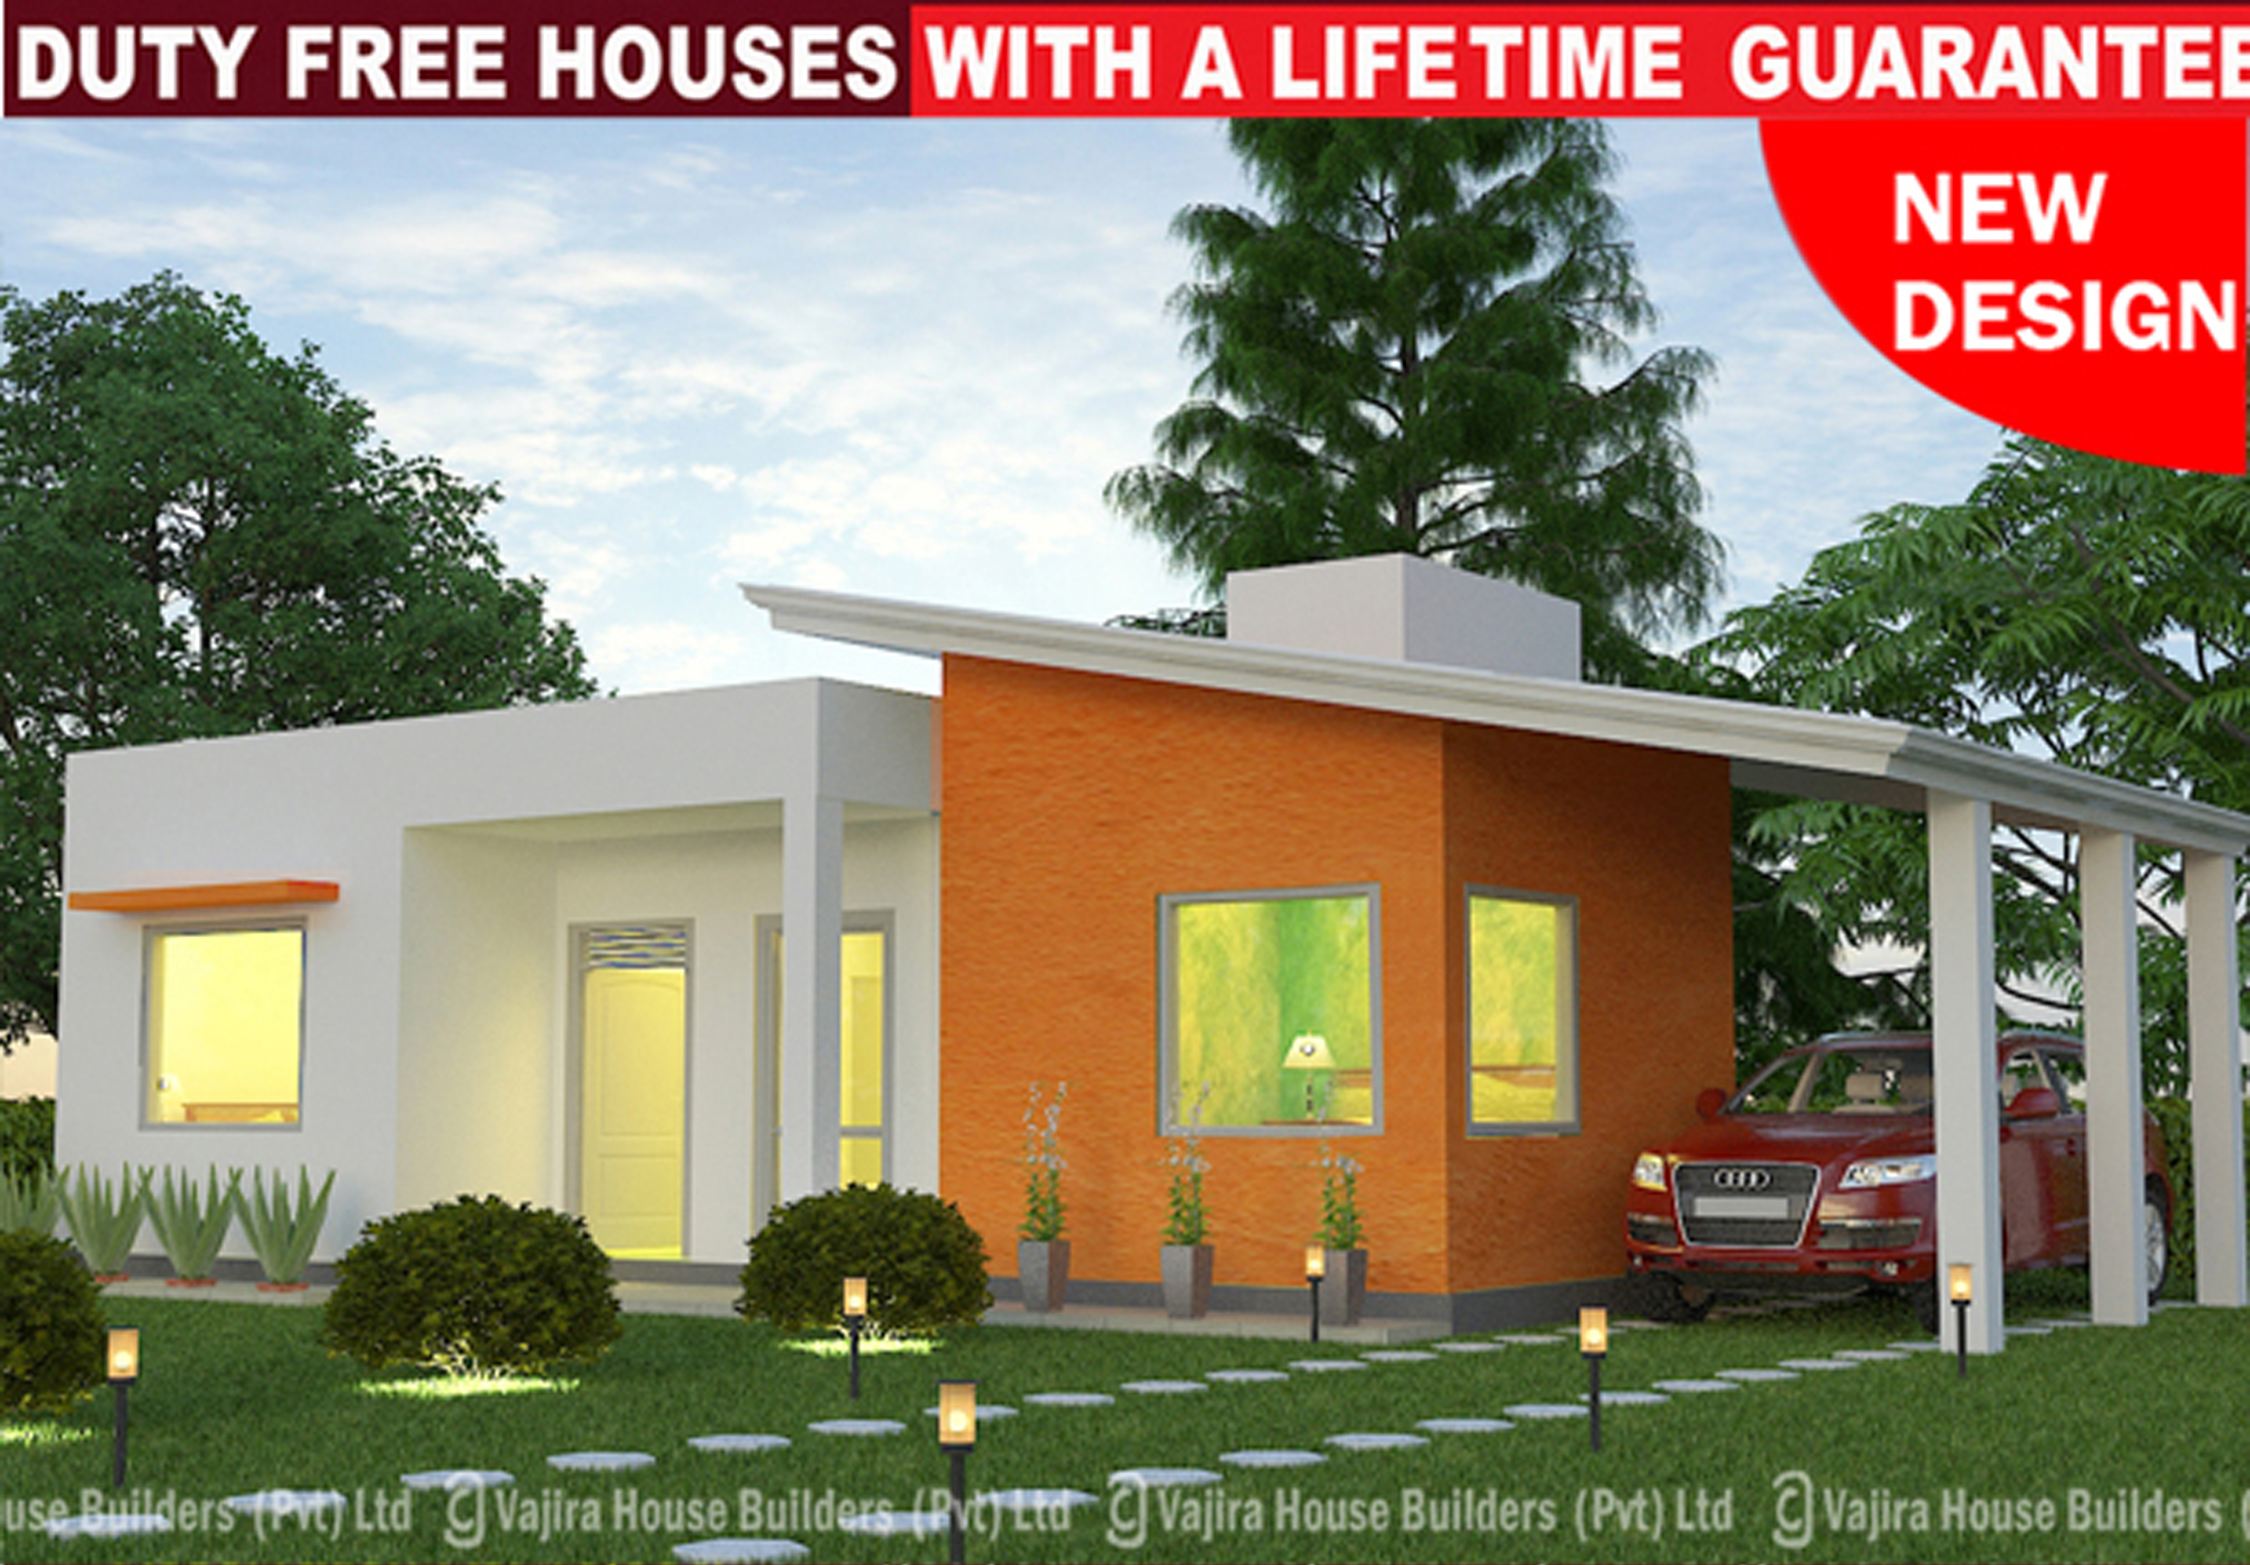 Vajira House Home Plan Gallery - 3D house designs - veerle.us